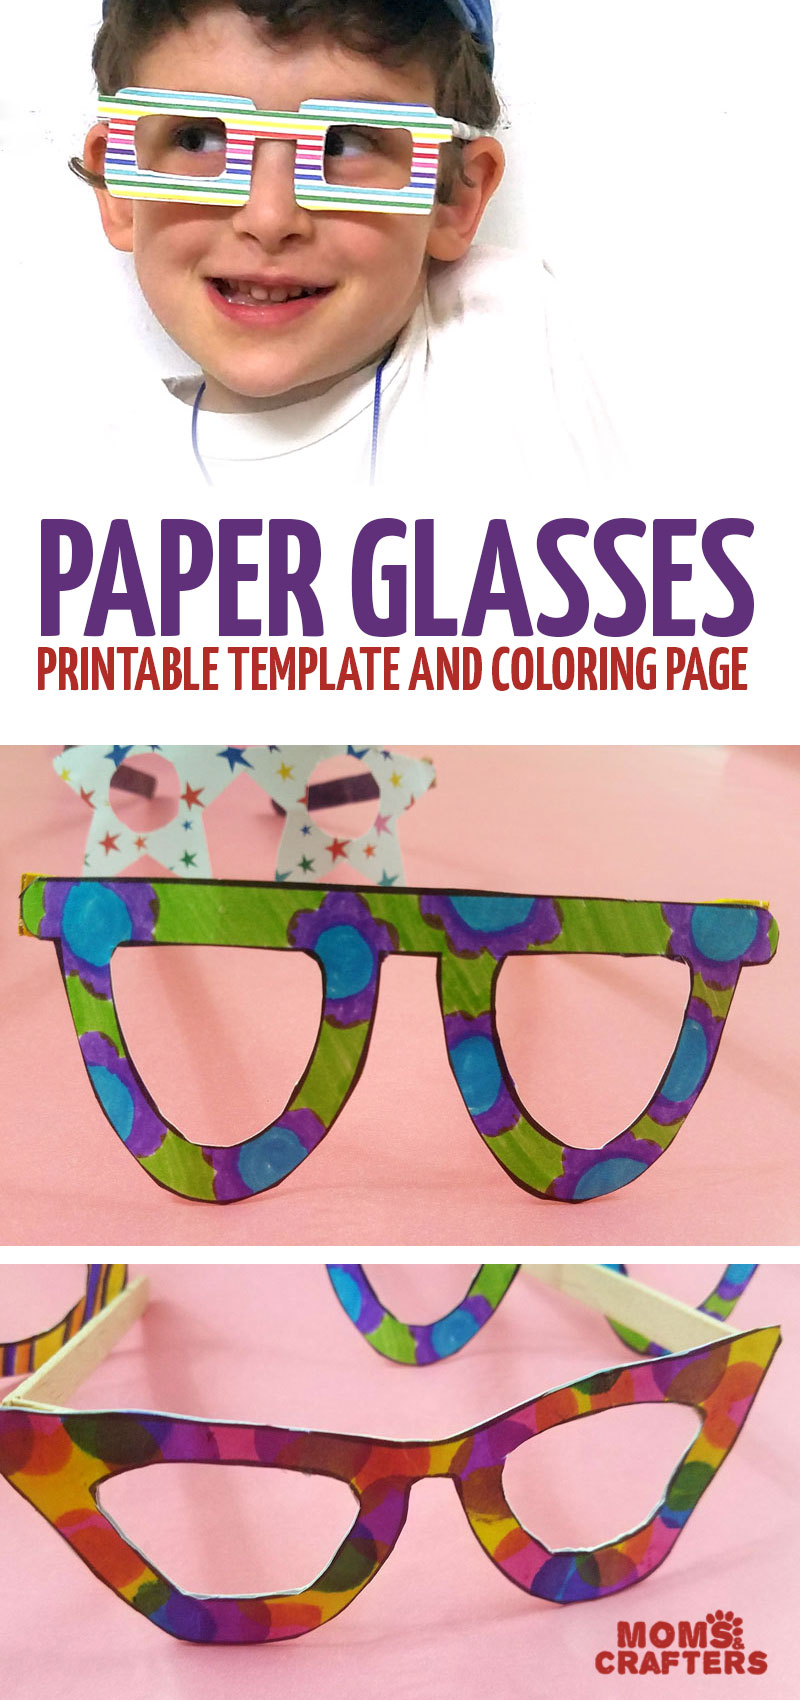 Make your own paper glasses with a printable template! You can use these as a coloring page and color in before crafting or use scrapbook paper to make this fun and funky papercraft for kids. #paper #papercraft #kidscraft